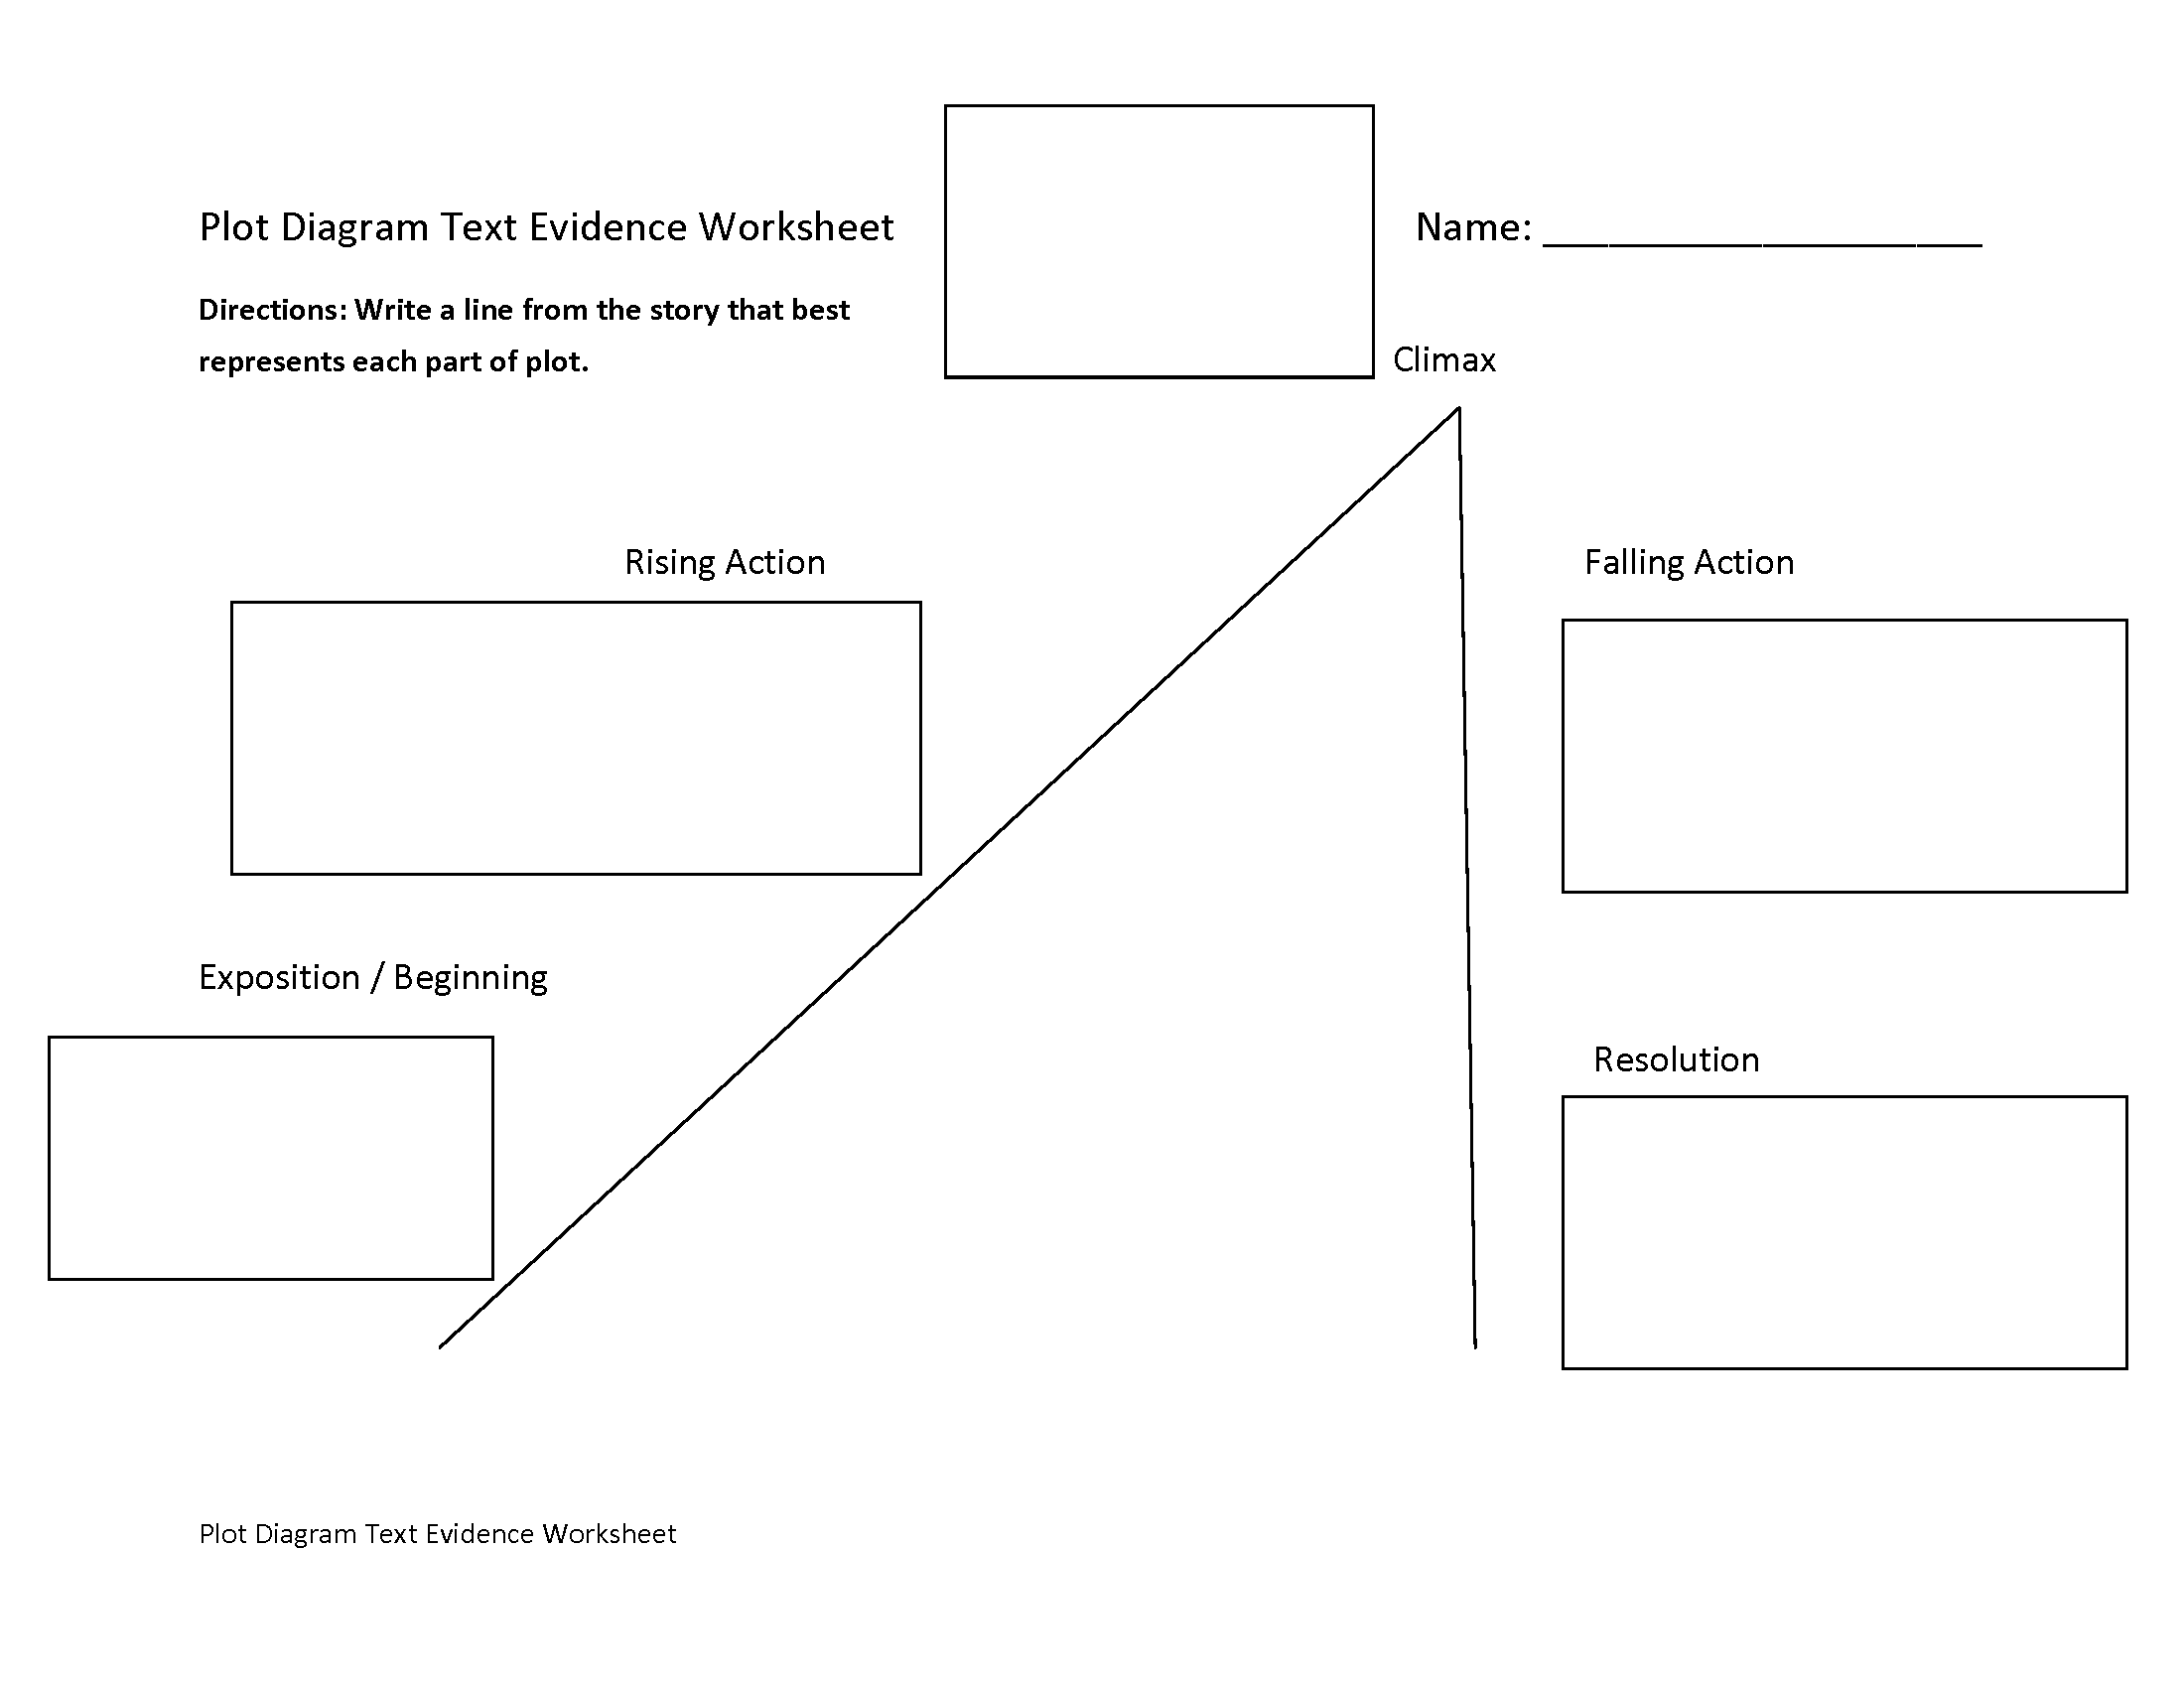 Text Evidence Worksheets : Plot Diagram Text Evidence ...